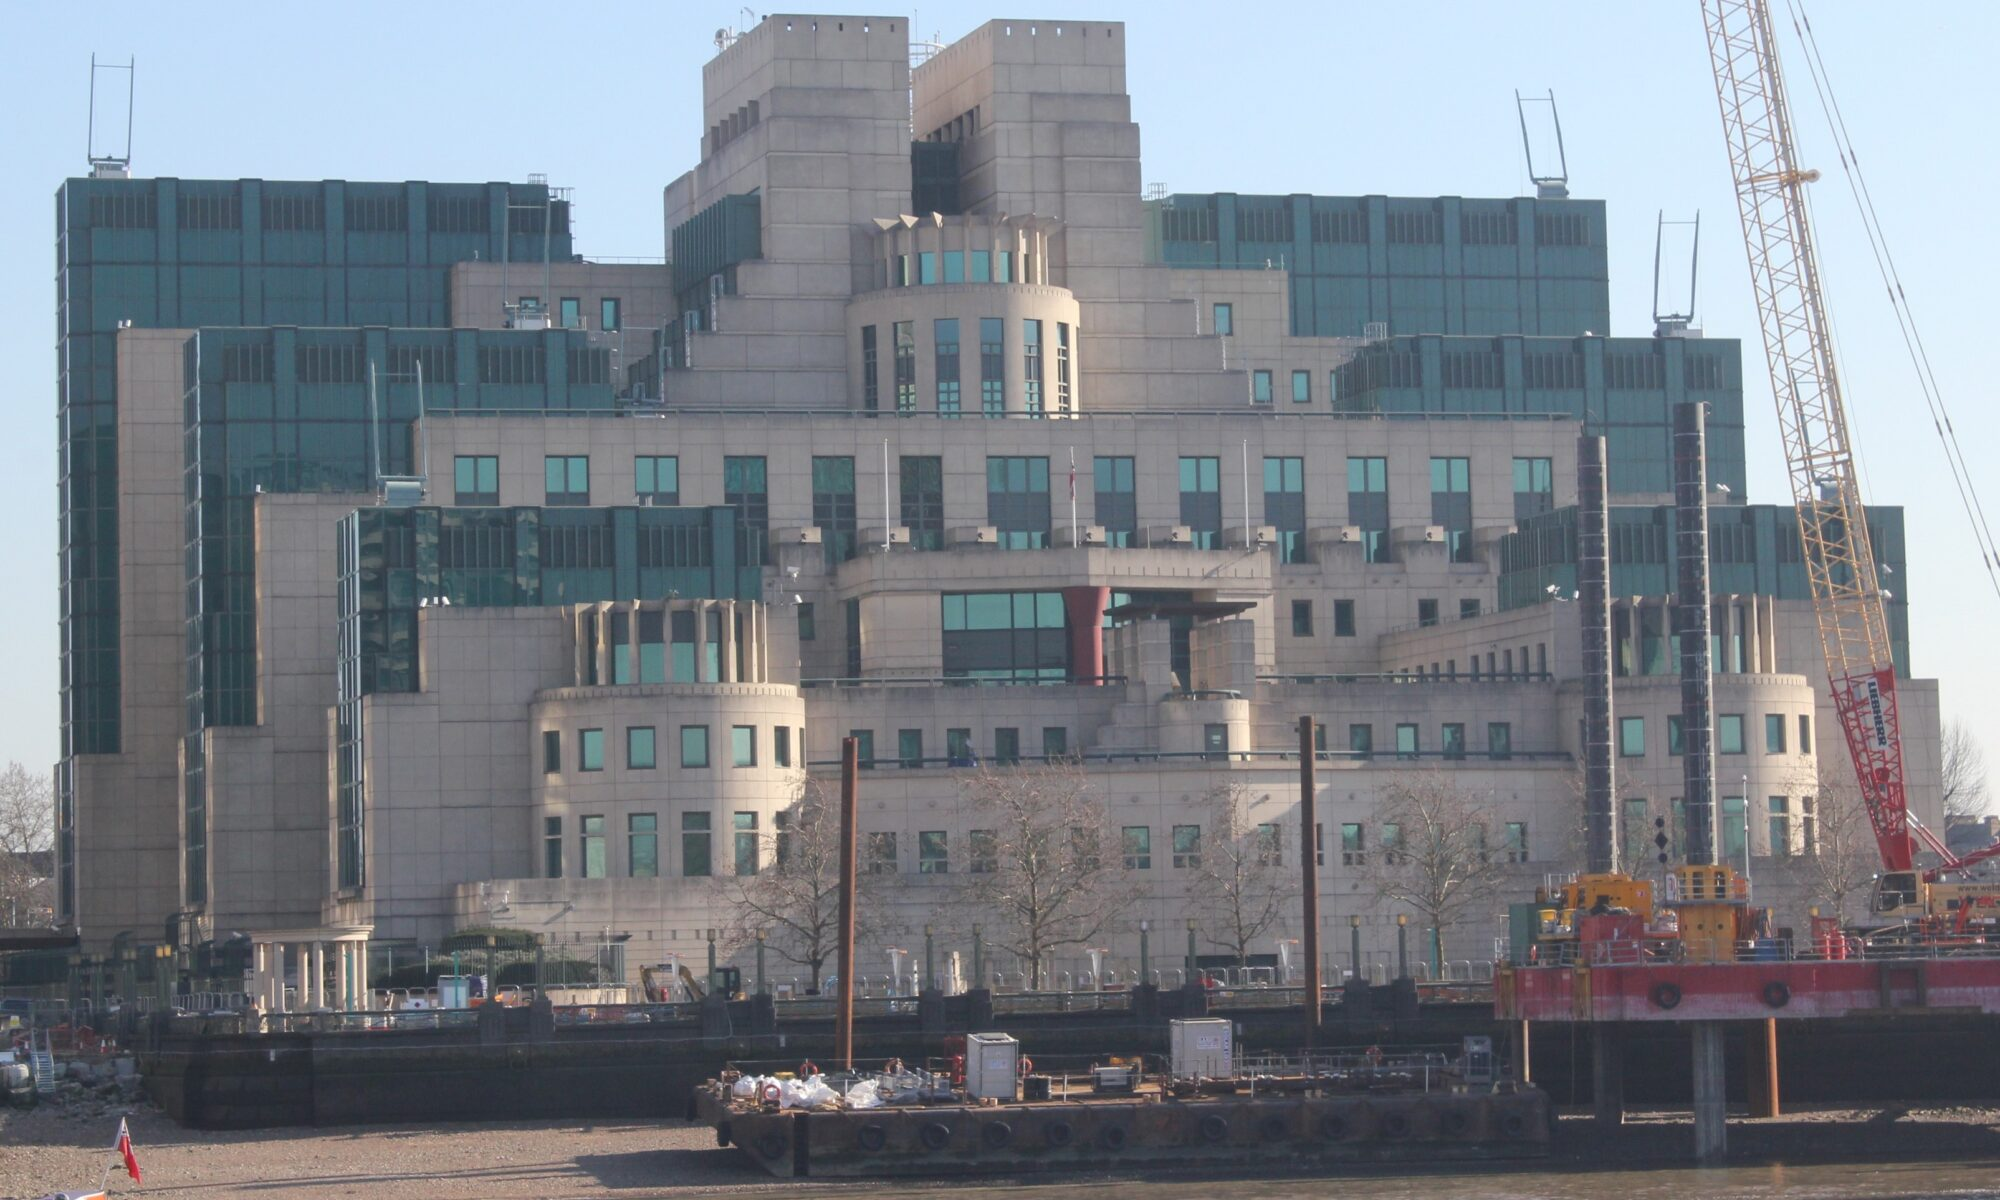 MI6 Headquaters in London as seen from the Milbank